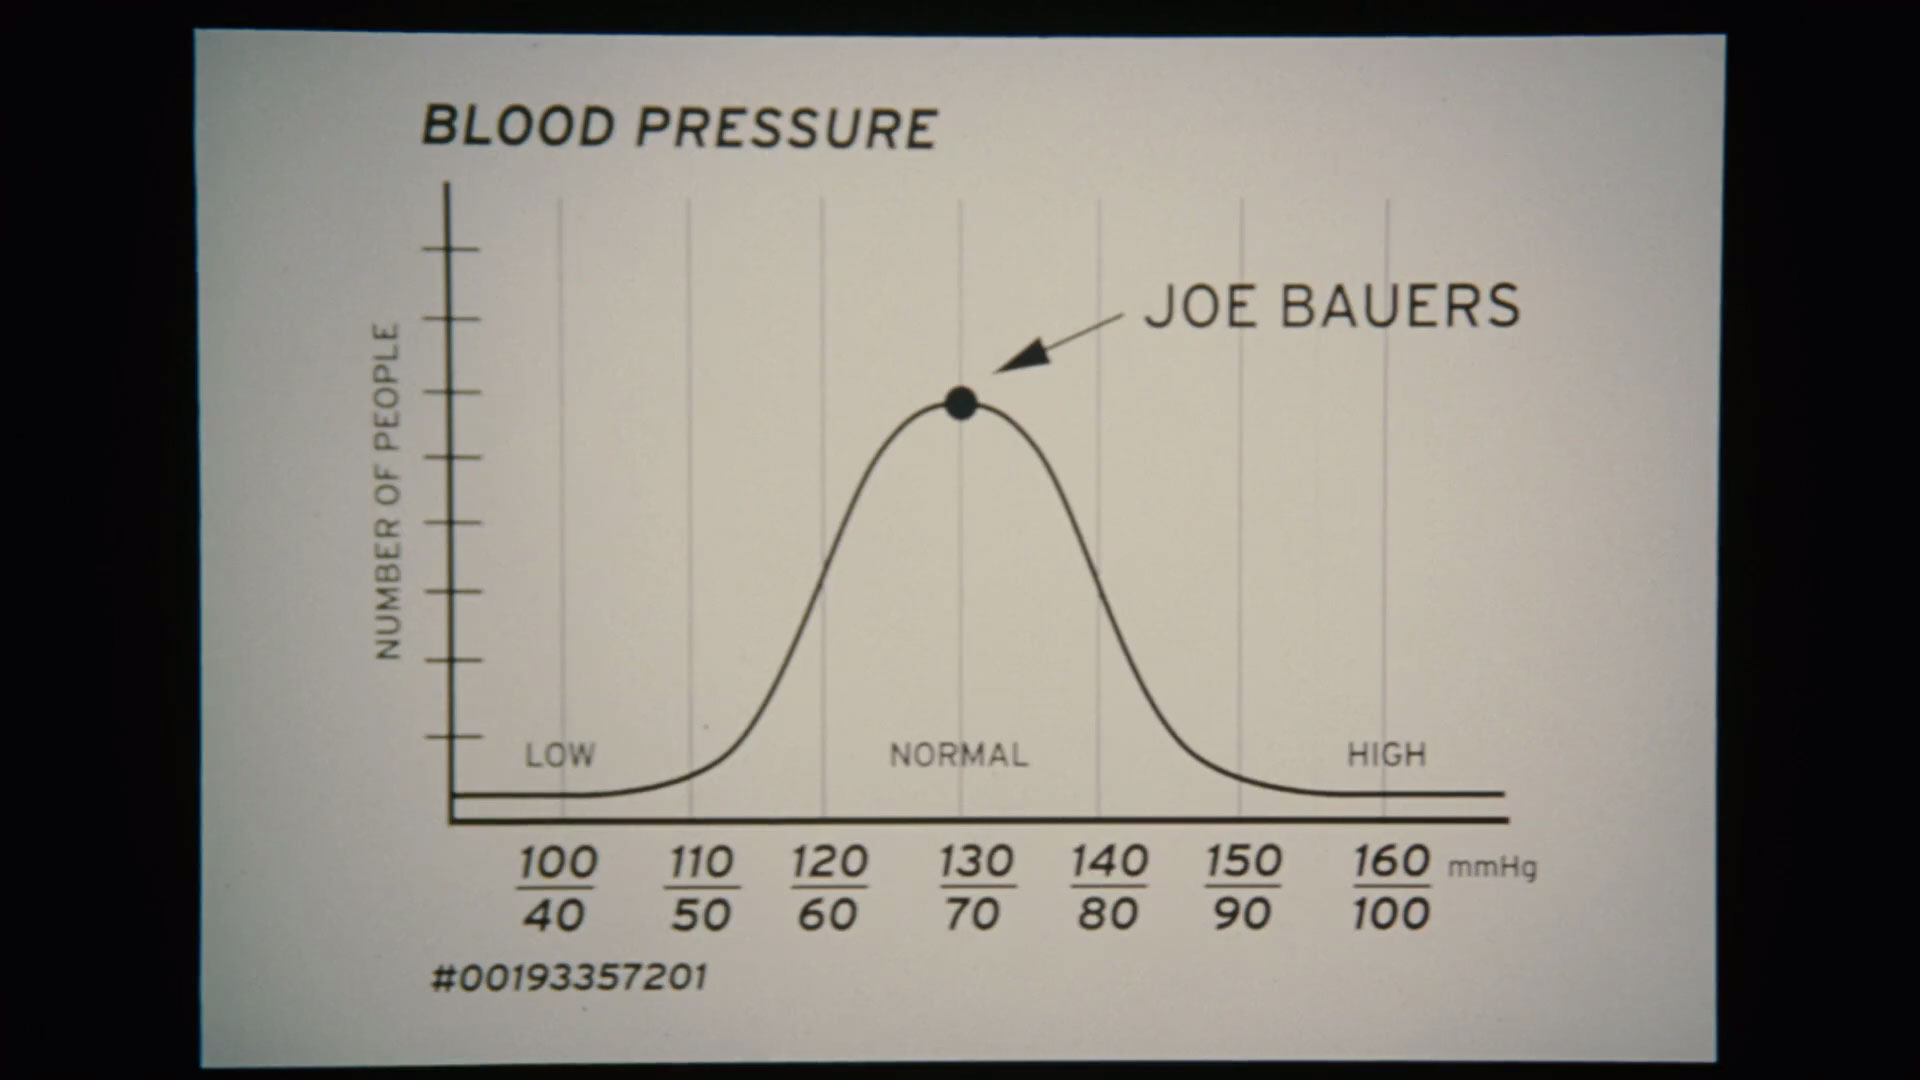 Joe Bauers has Remarkably Normal Blood Pressure